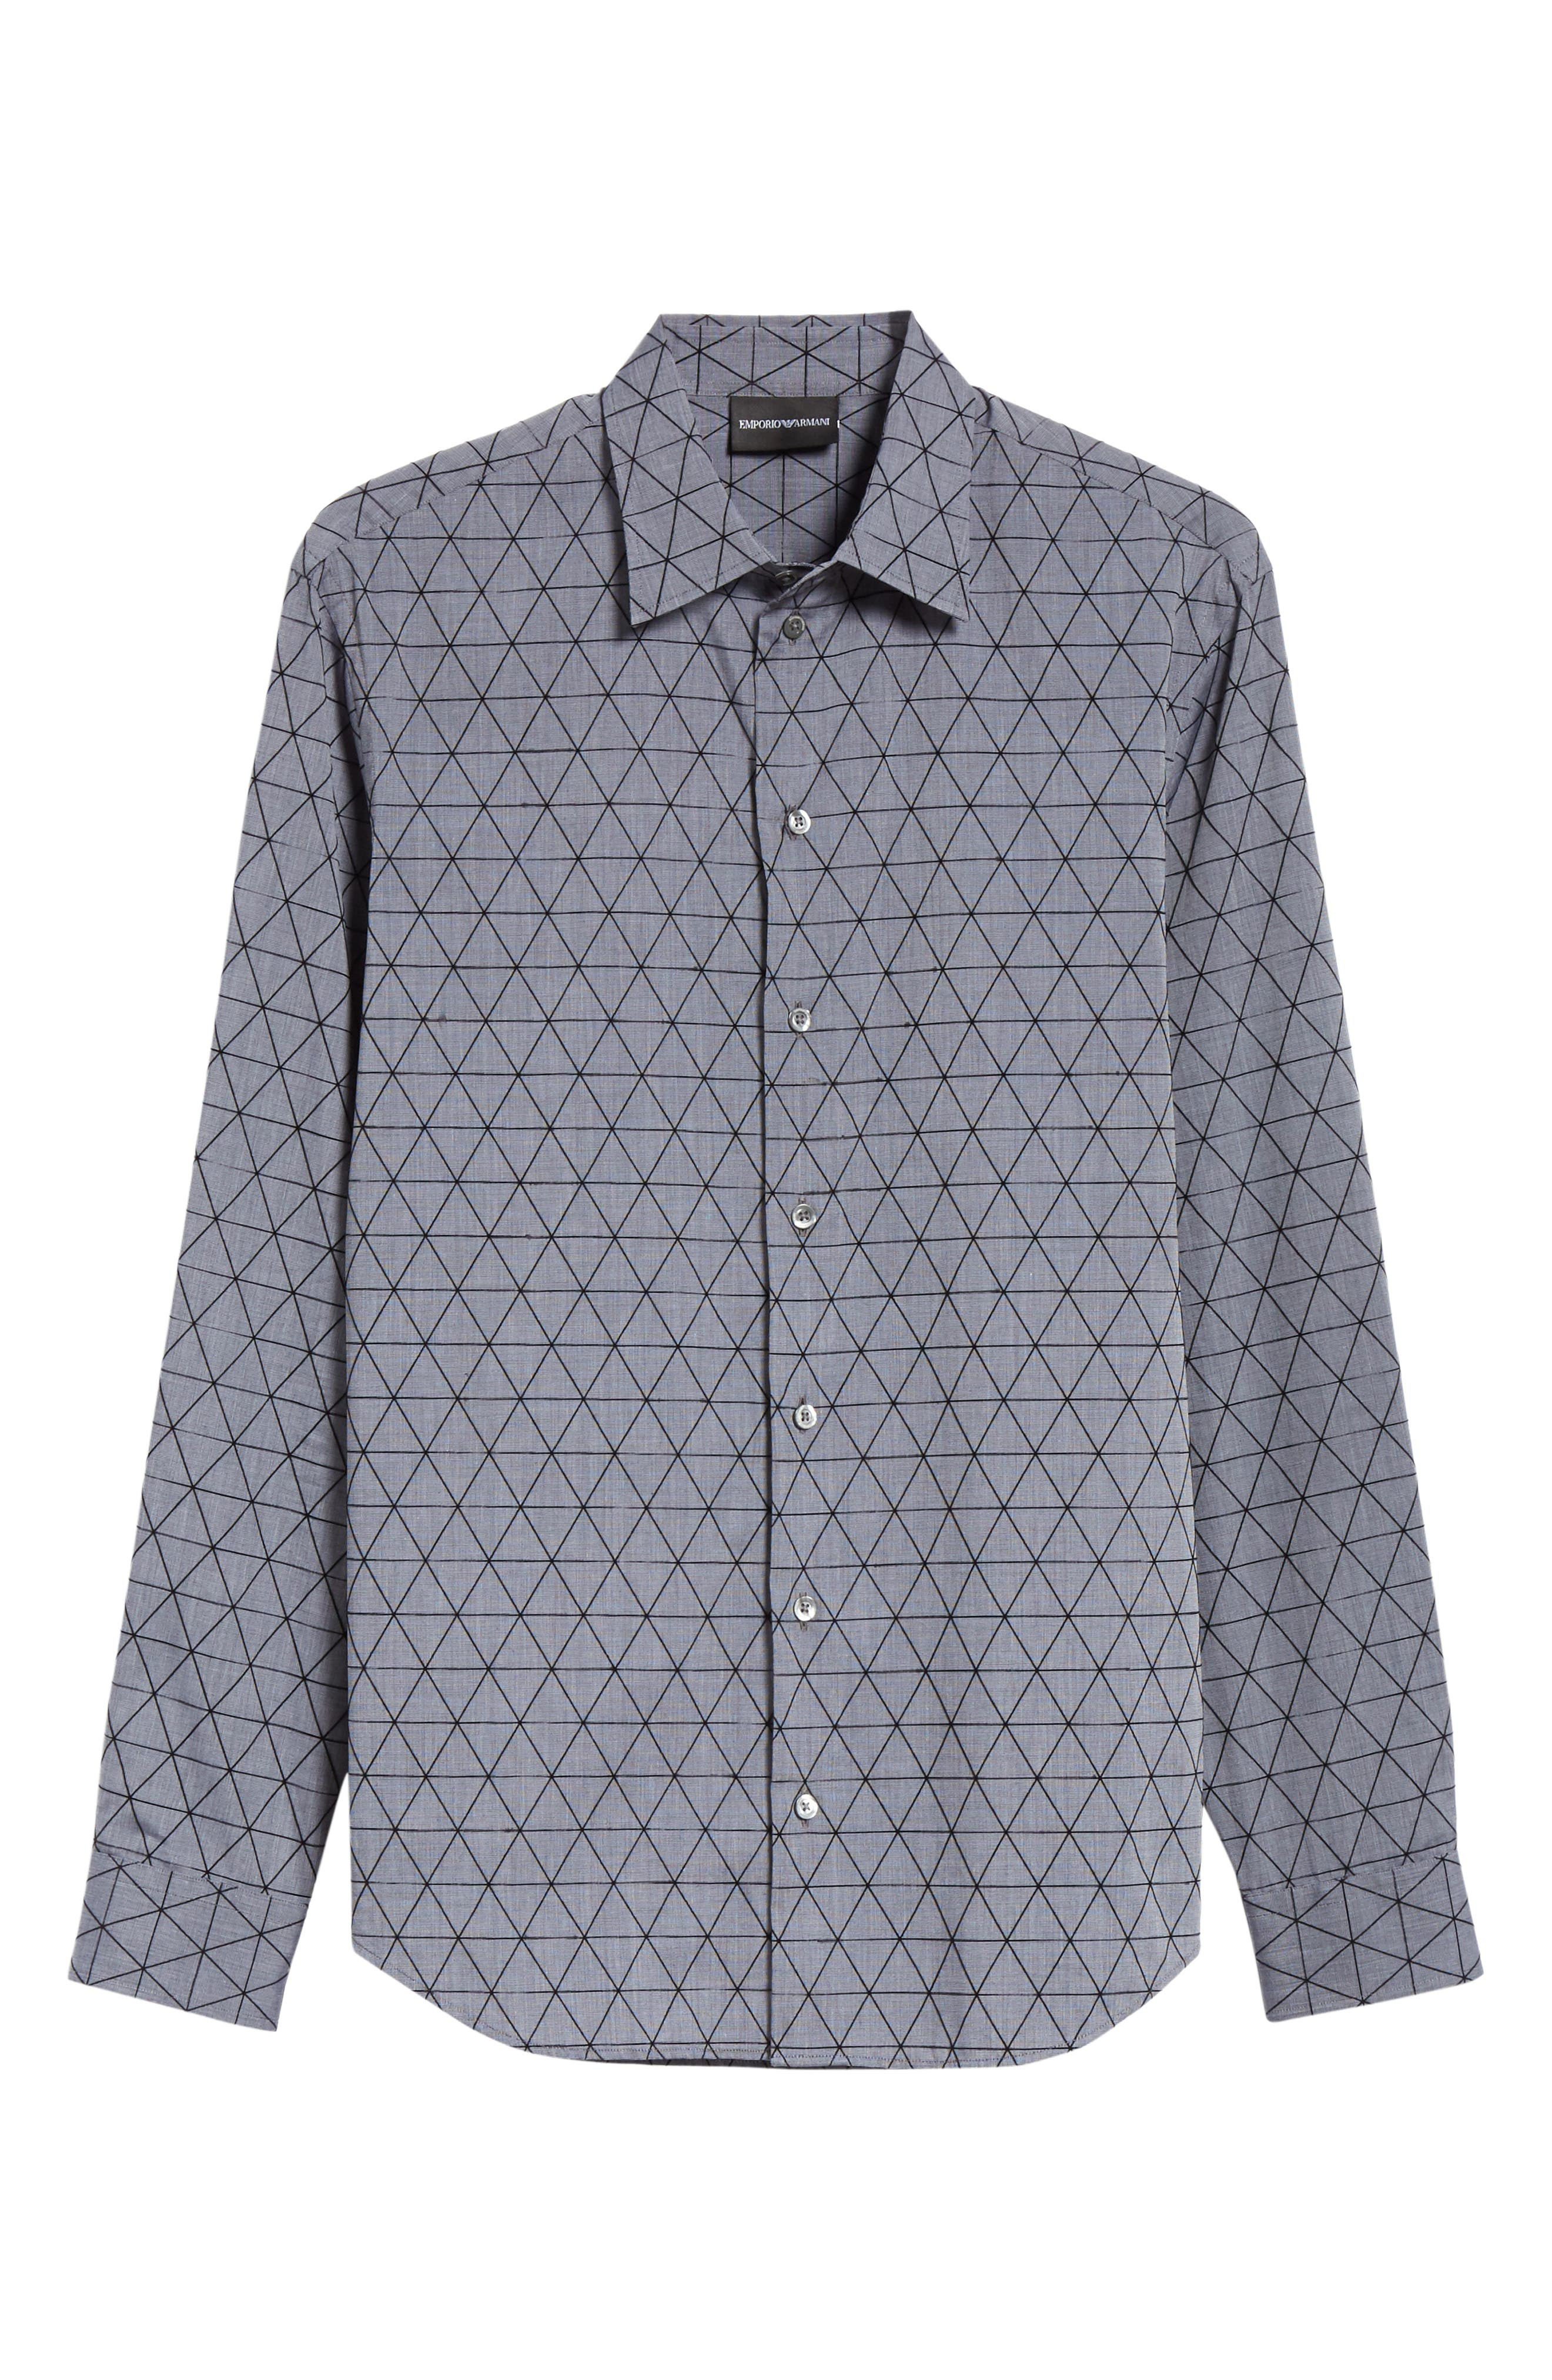 Regular Fit Geometric Sport Shirt,                             Alternate thumbnail 6, color,                             GREY MULTI